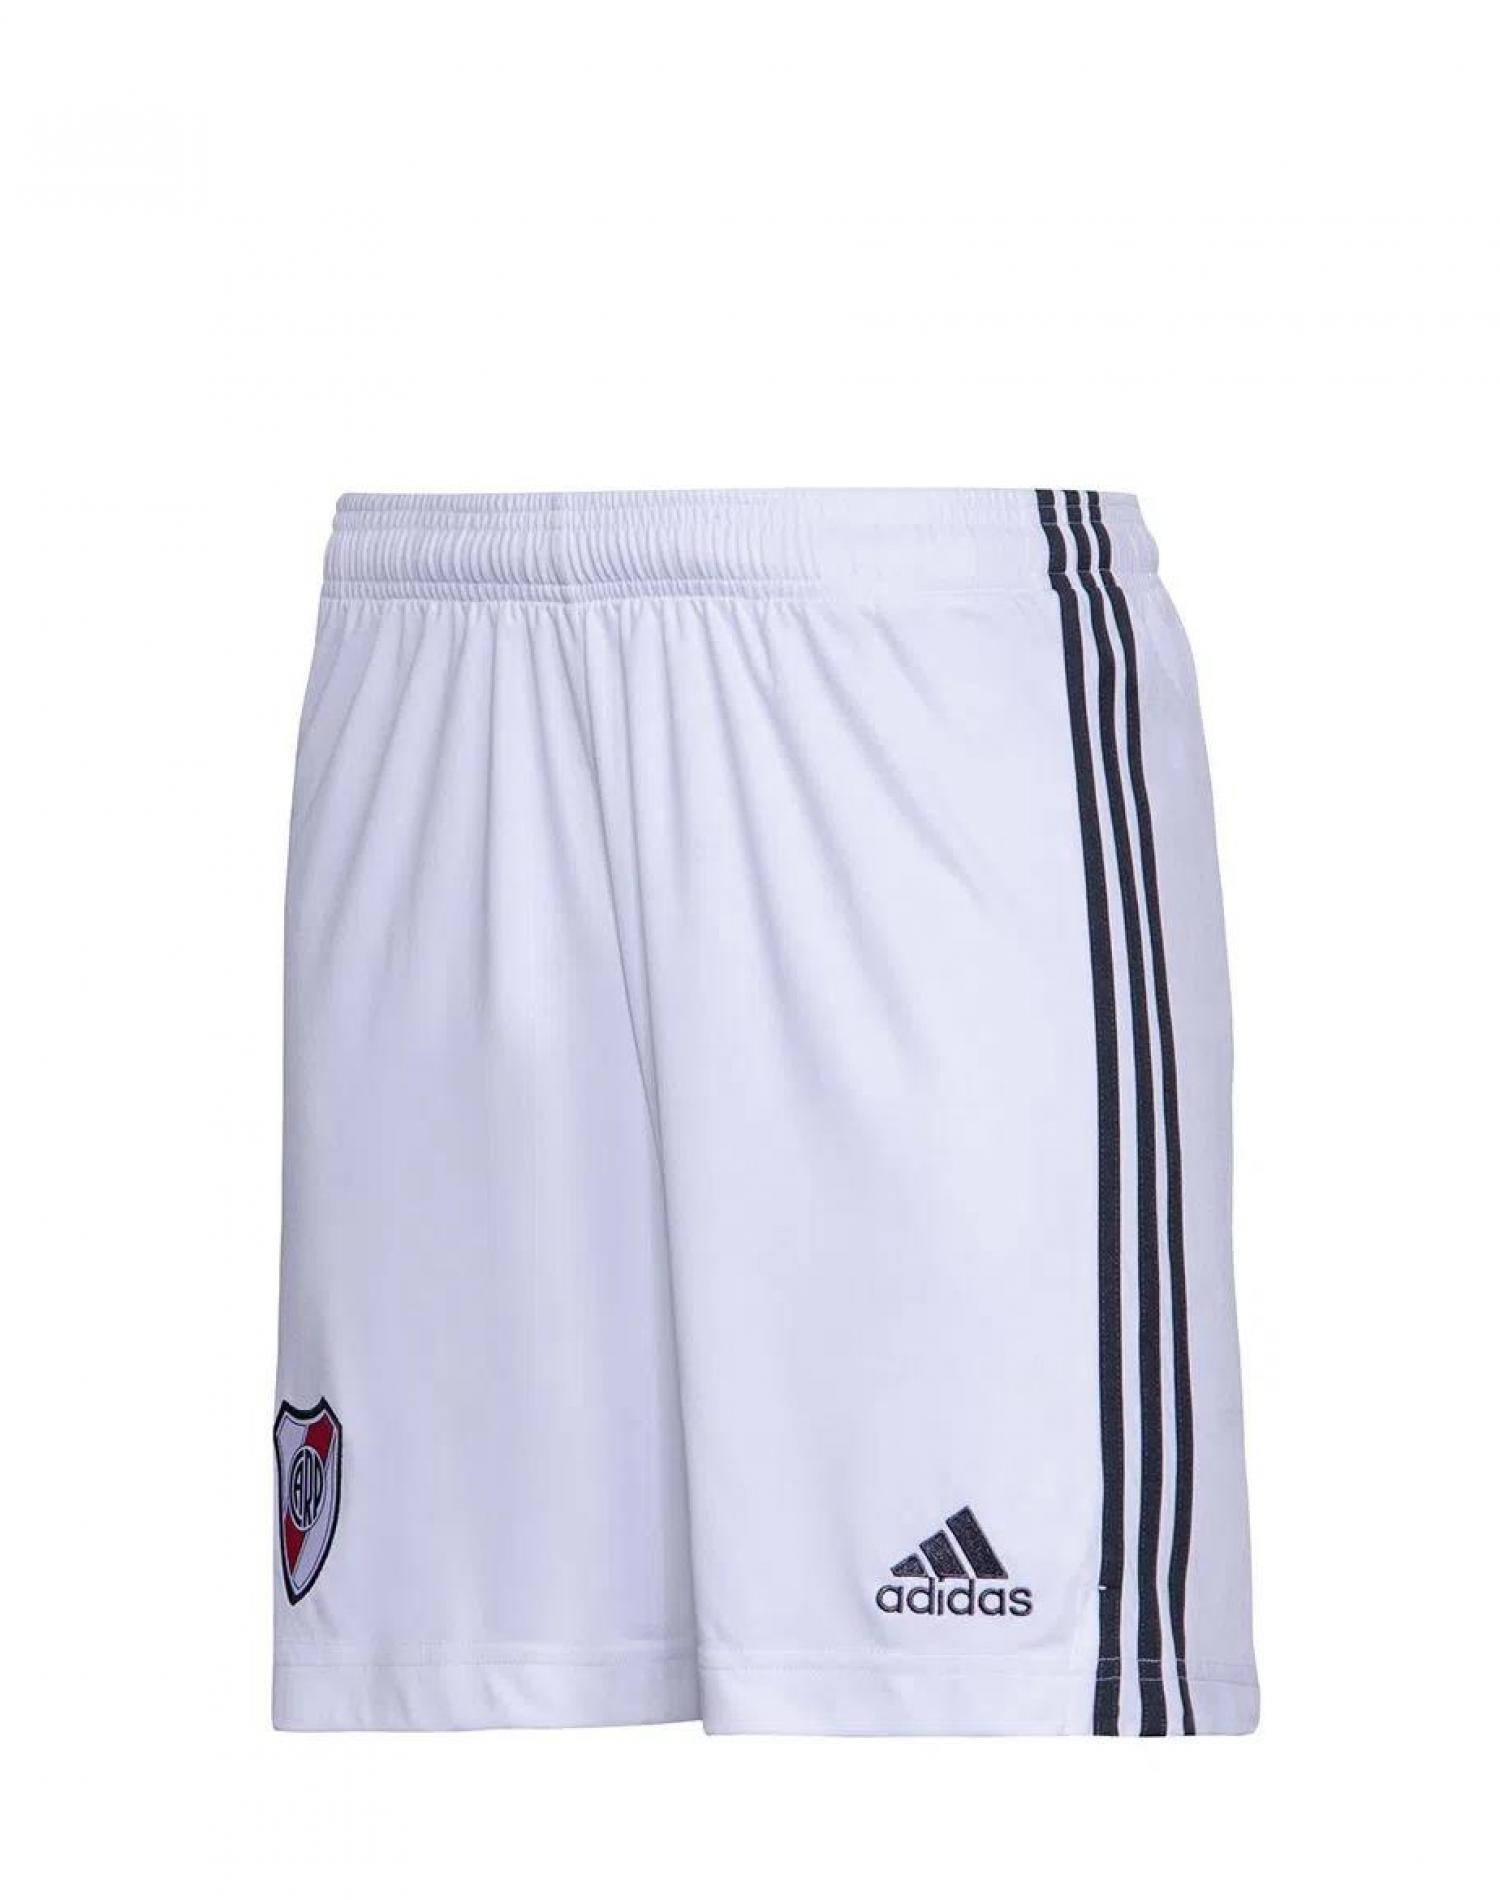 Short Blanco Adidas River Plate 21